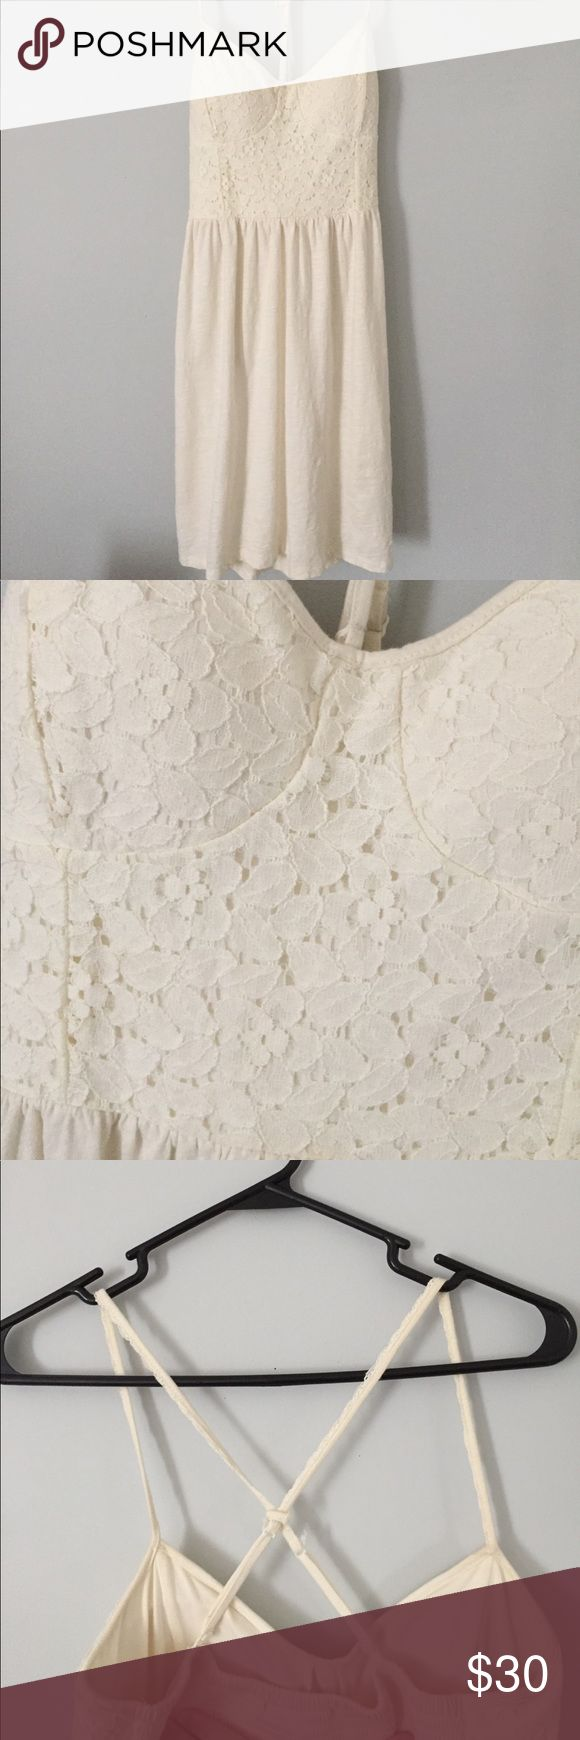 American Eagle Dress 🦅 White/cream Dress, lacy at top. Cupped bra area. Size small. American Eagle Outfitters. American Eagle Outfitters Dresses Mini #americaneagleoutfitters